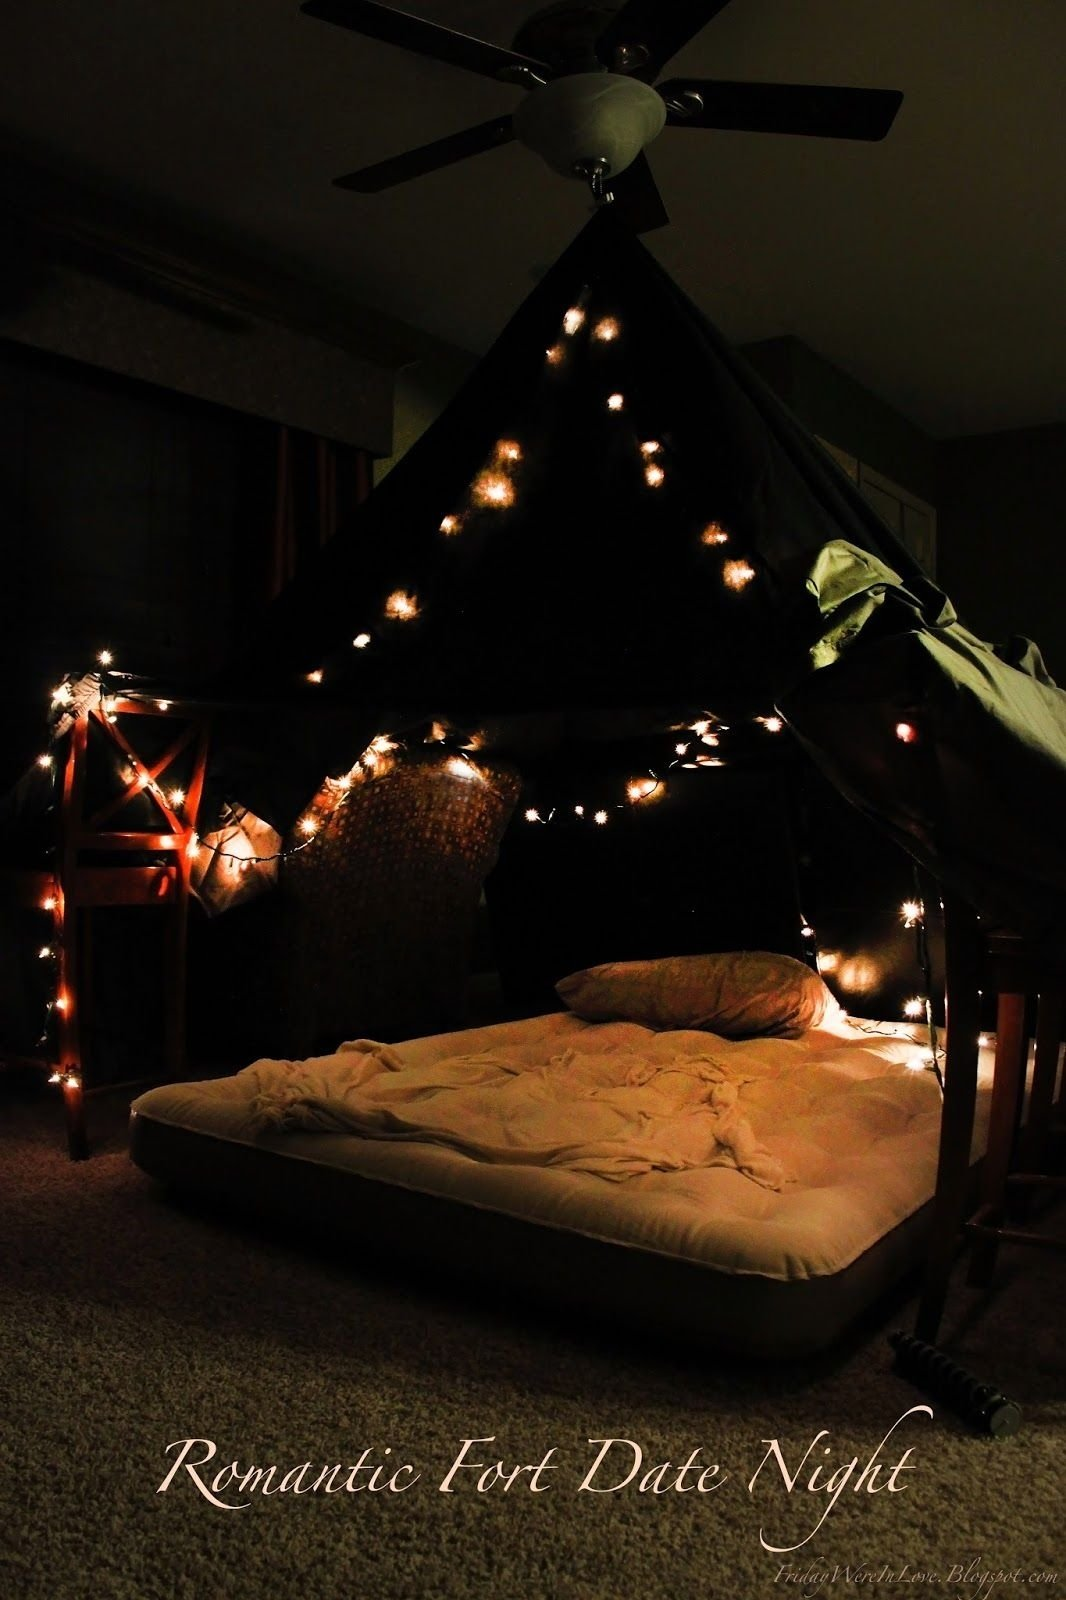 10 Unique Romantic At Home Date Ideas 12 months of dates january romantic fort night forts romantic 4